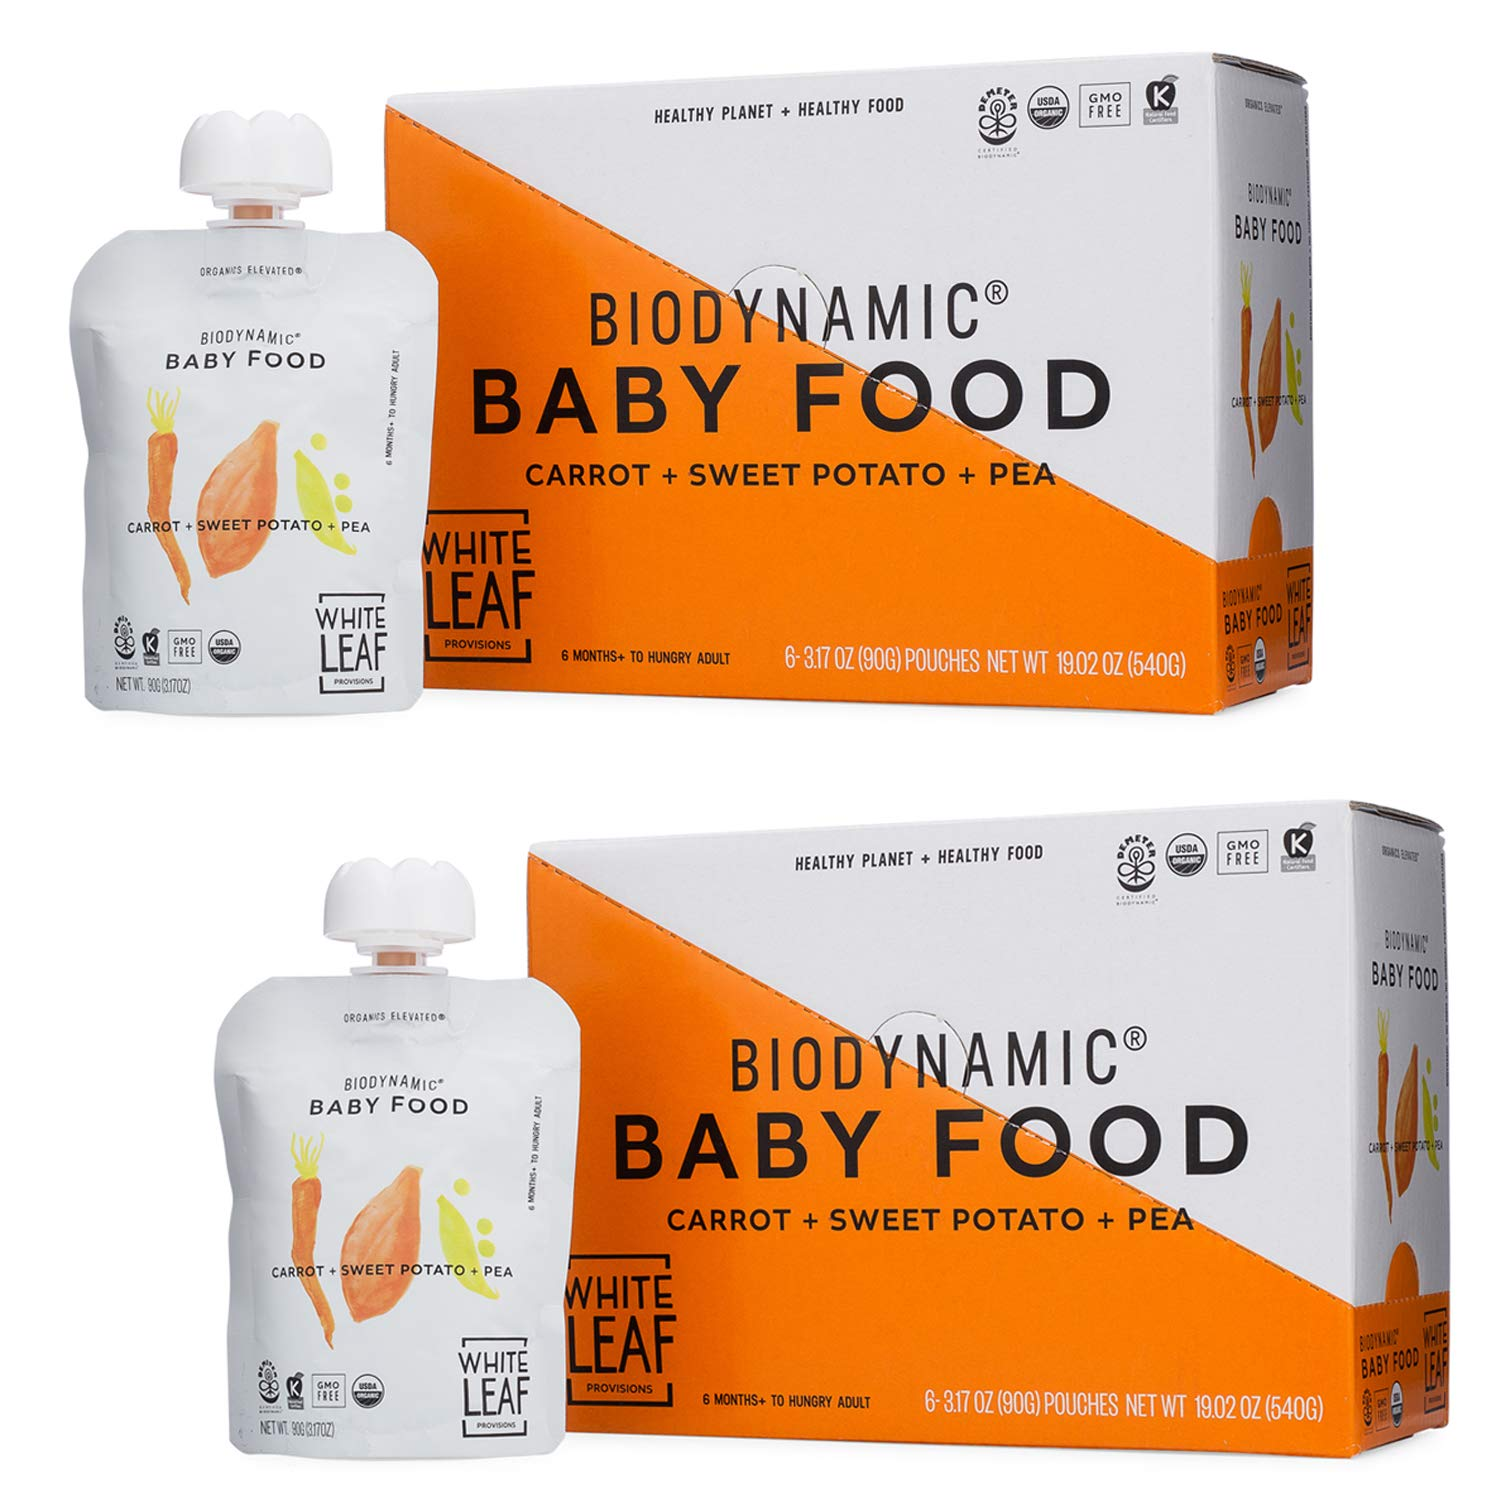 White Leaf Provisions' — 90g. 12 Pouches of Biodynamic Organic Baby Food Carrot + Sweet Potato + Pea — Unsweetened Baby Food — Healthy Snack Packs for Babies and Toddlers